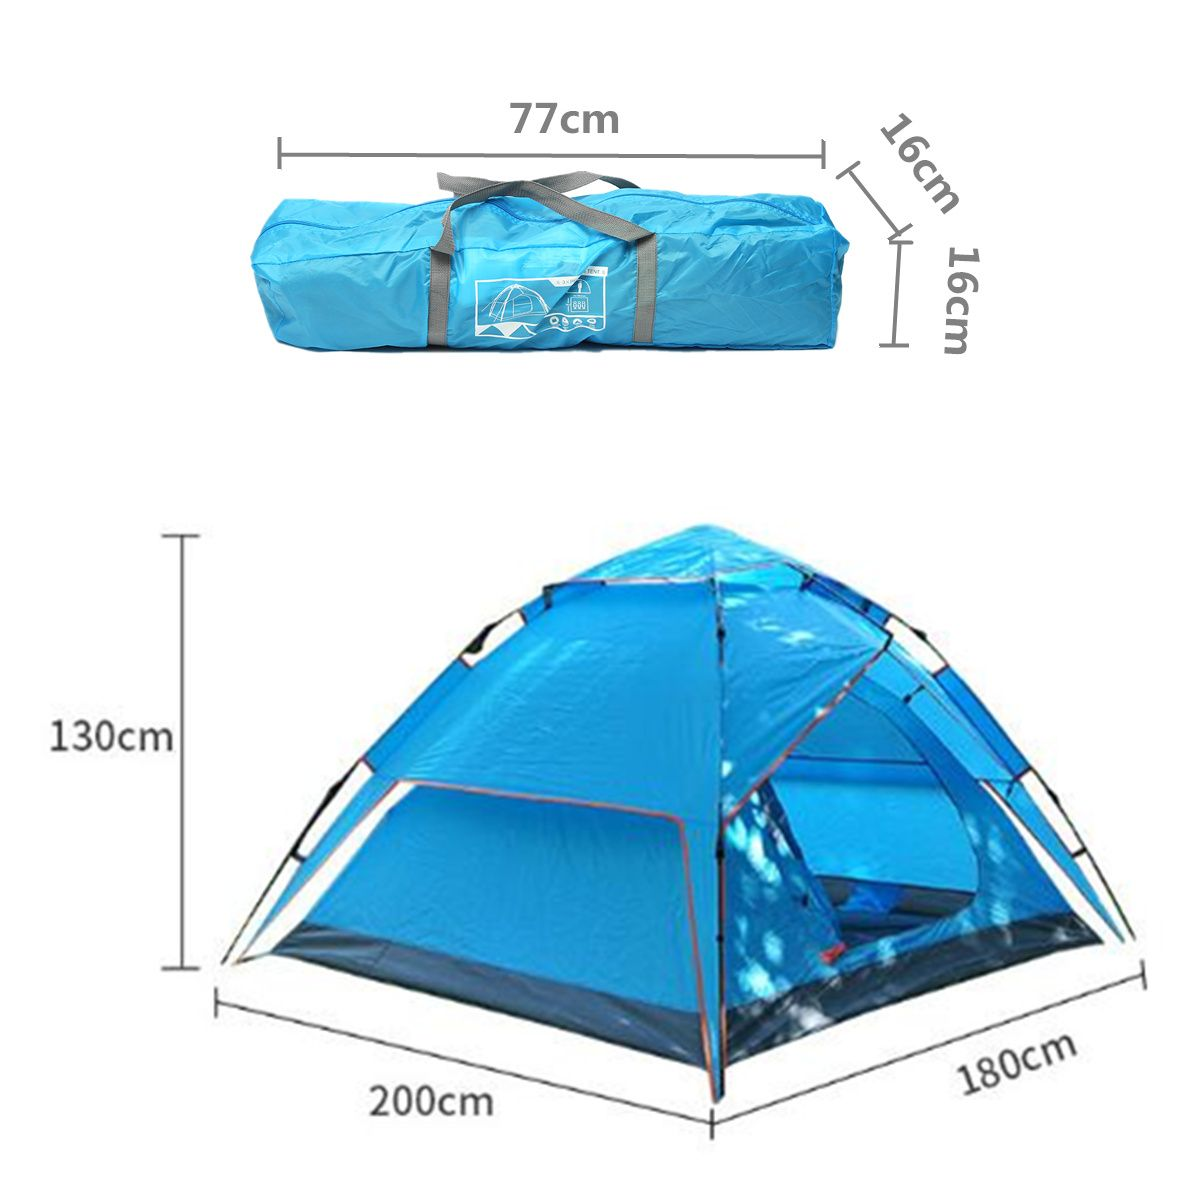 Two Inflating Camping Roll Two Mat Pad Inflatable Pillow Bed Sleeping Mattress Tent Affordable Price Mat Pad Inflatable Pillow New Kids Toys Bed Pillows